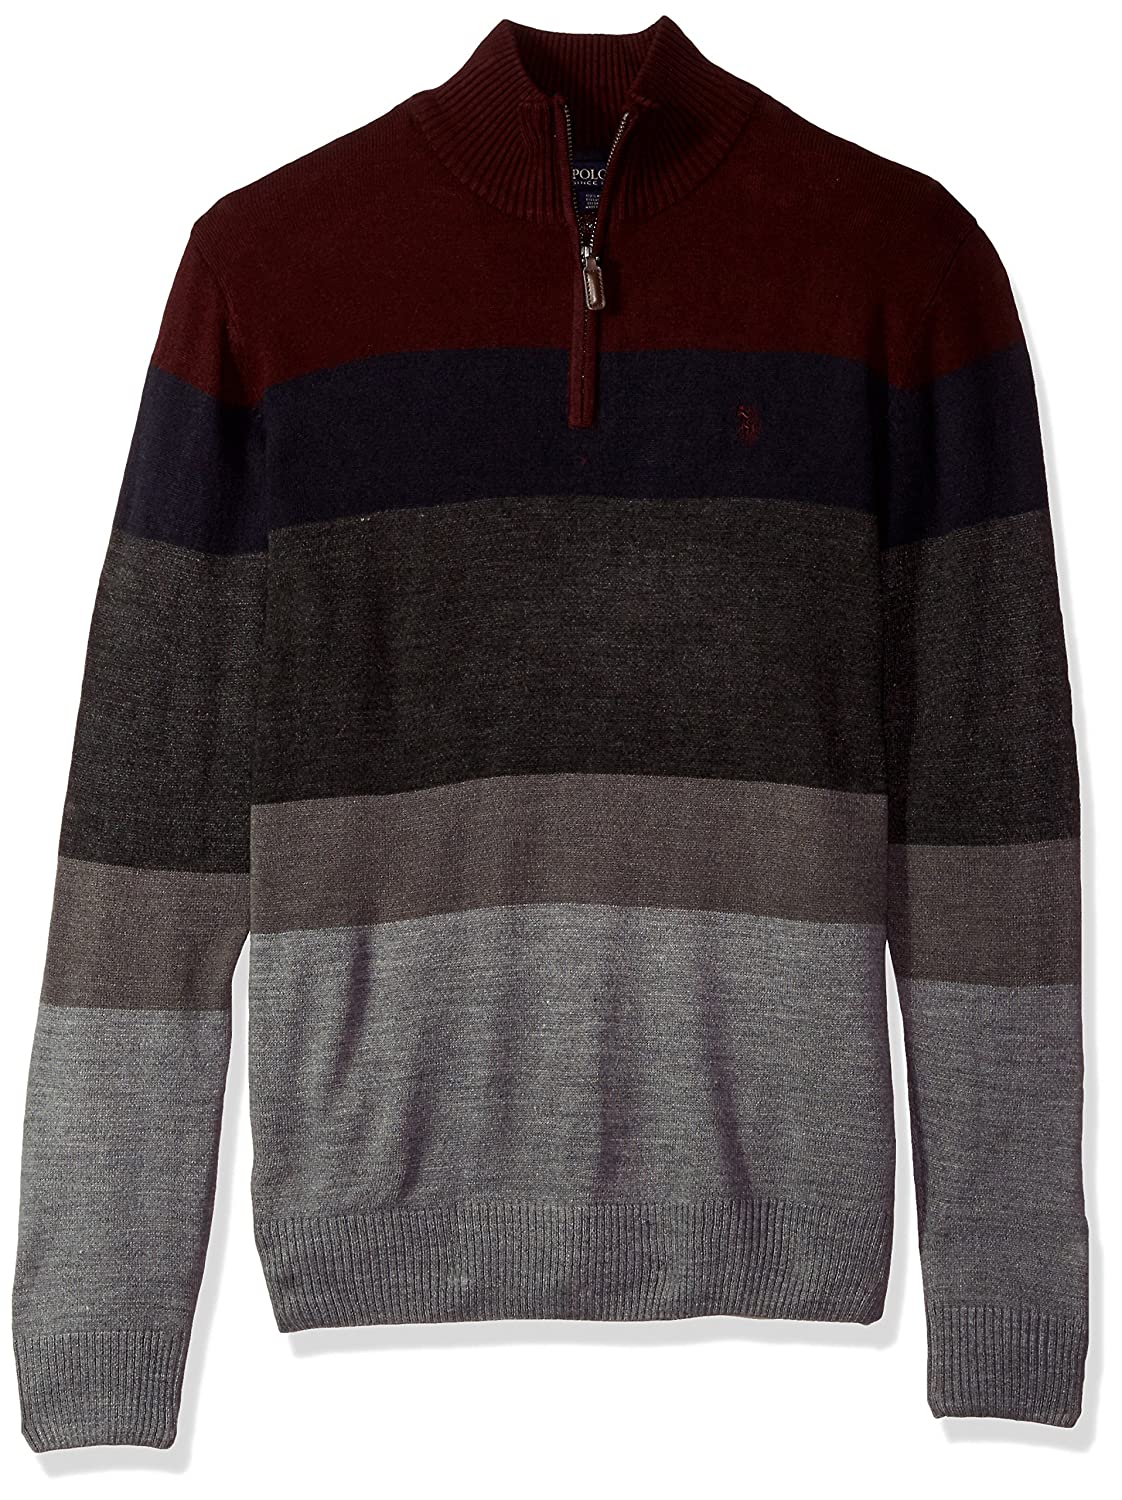 U.S. Polo Assn. Men's Double Striped 1/4 Zip Sweater, ACUF7S5766